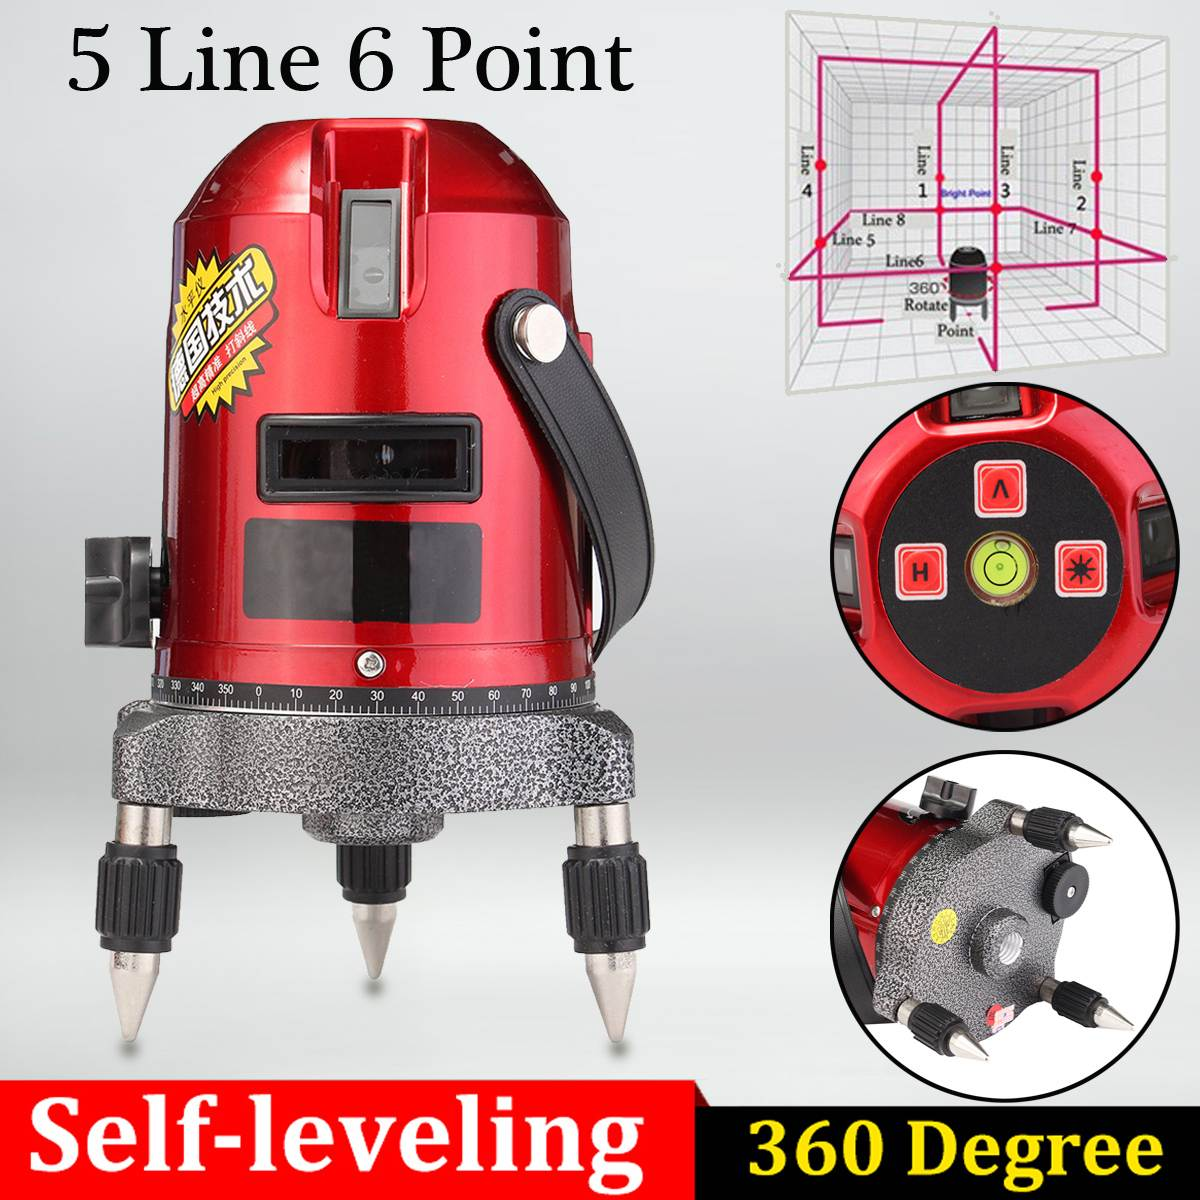 5 Line 6 Point 4V1H Cross Line Red Shockproof Automatic Self Leveling Laser Level Measure Meter Kit покрывало на кресло les gobelins mexique 50 х 120 см